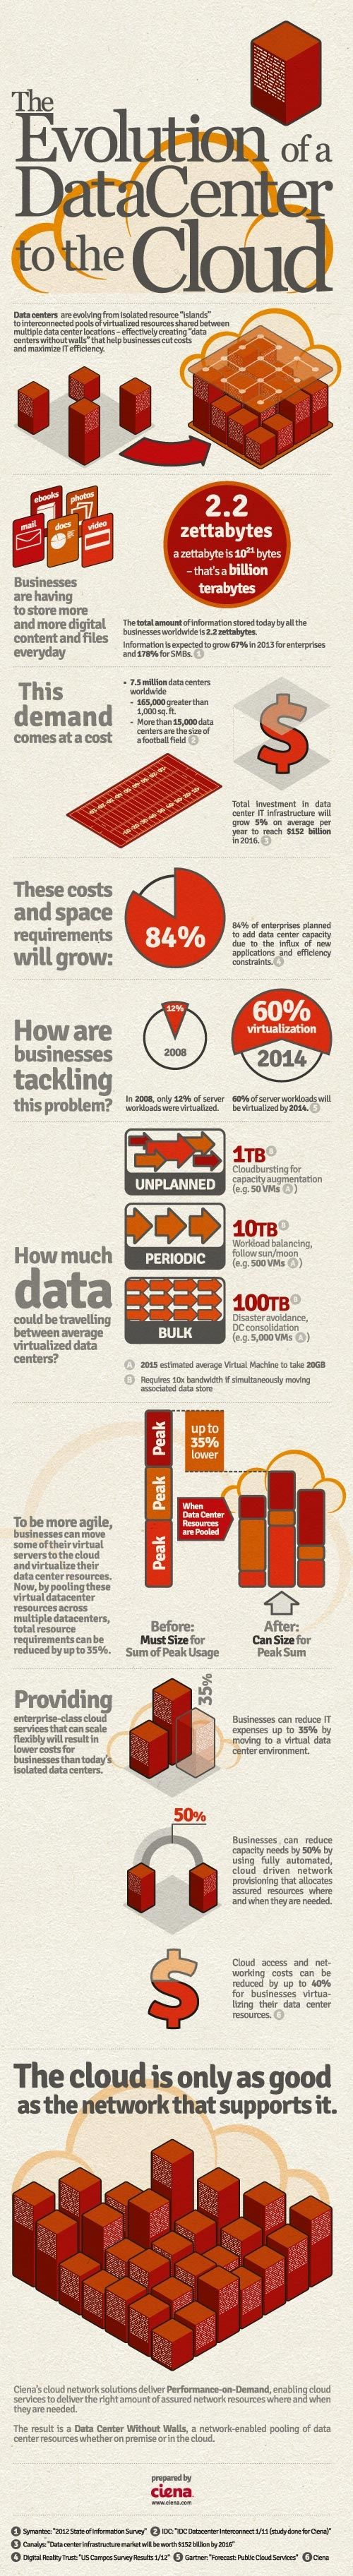 DataCenterIG Final The Evolution of a Data Center to the Cloud   Infographic from CloudTweaks